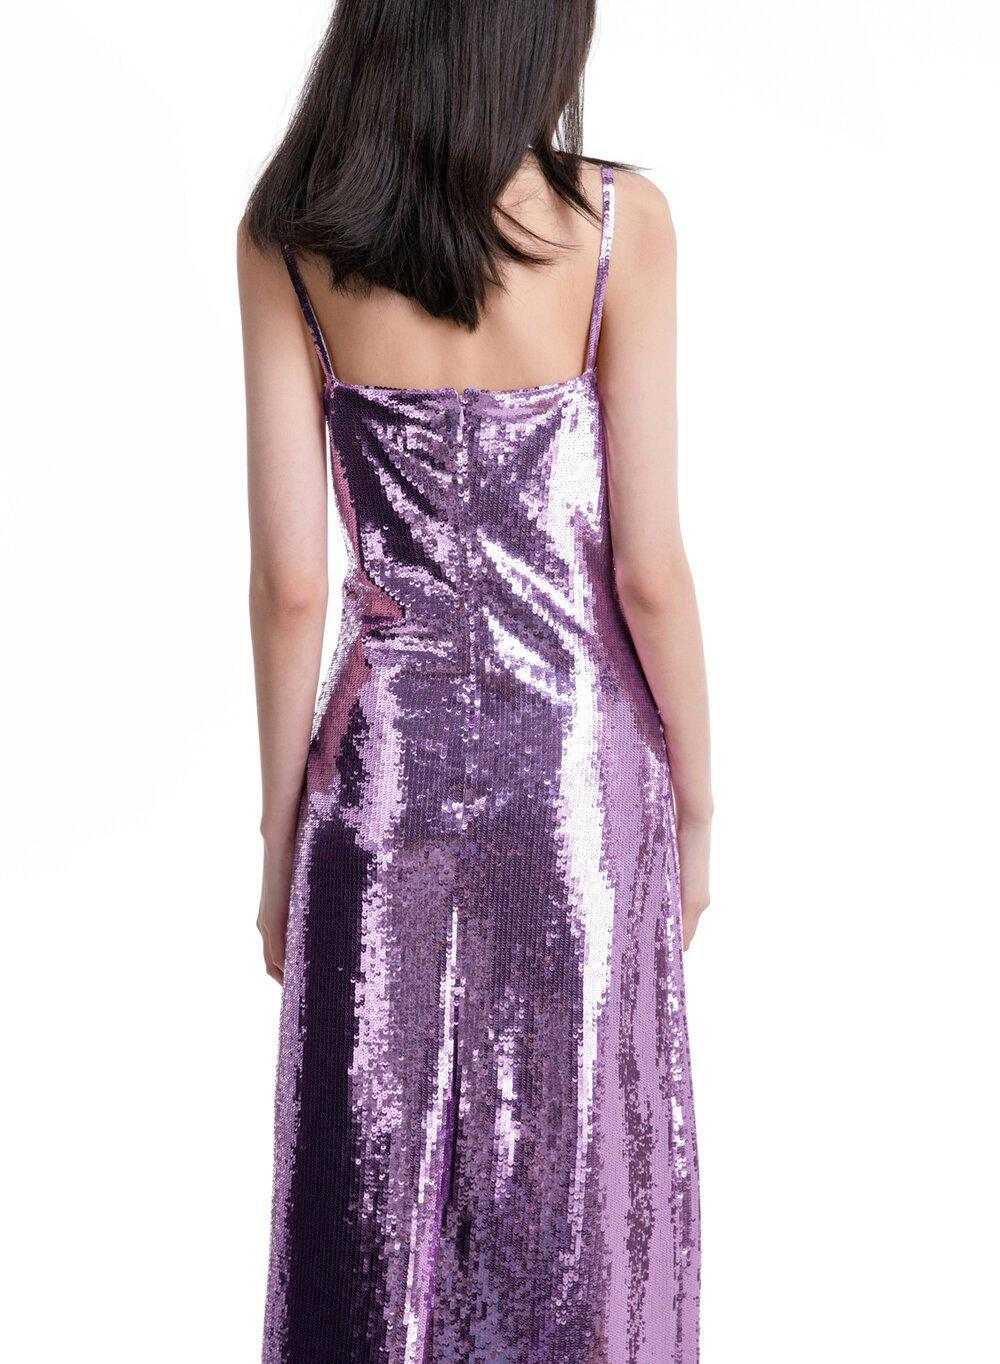 AURORA GOWN LILAC TULLE 8